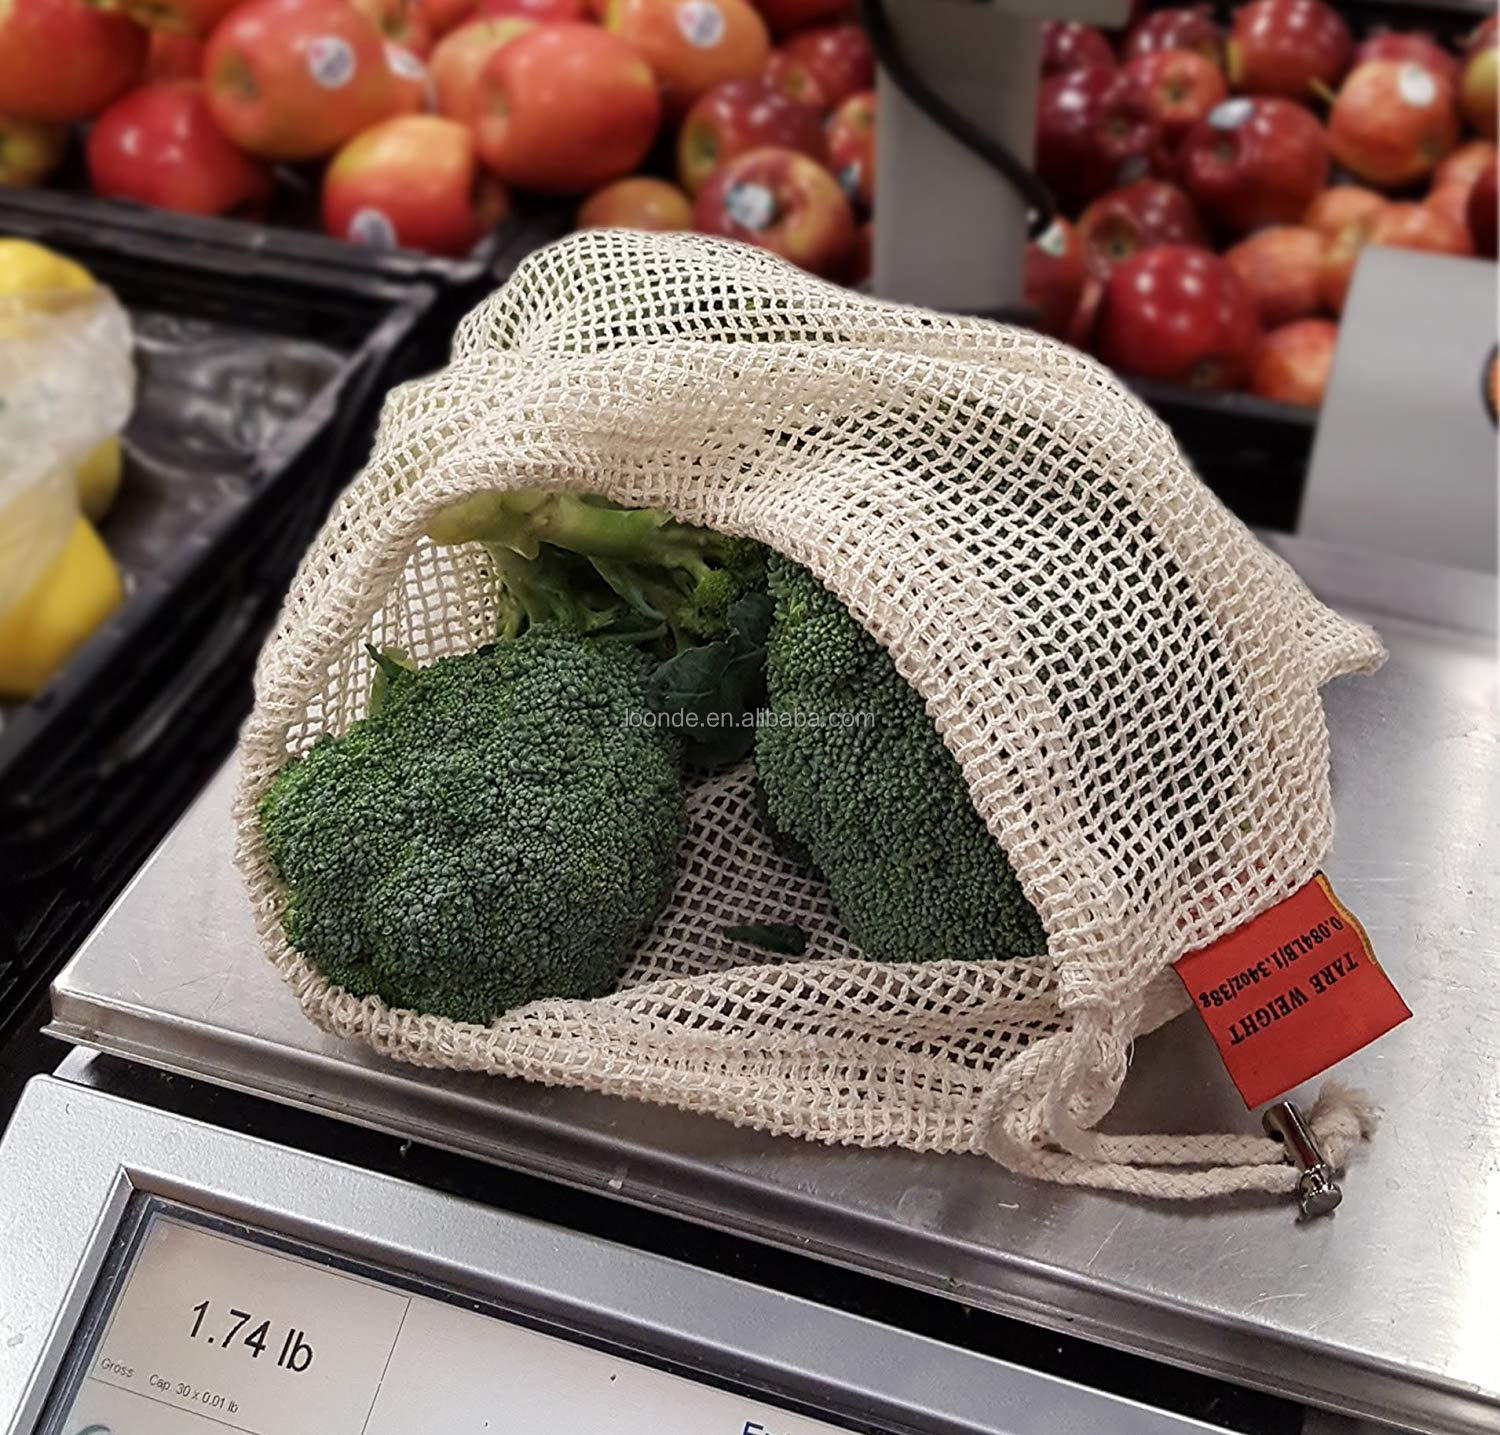 "Reusable Grocery Cotton Mesh Produce Bags Large 13"" x 15"",100% Organic Cotton Vegetable/Fruit Storage Bags,Premium Quality"